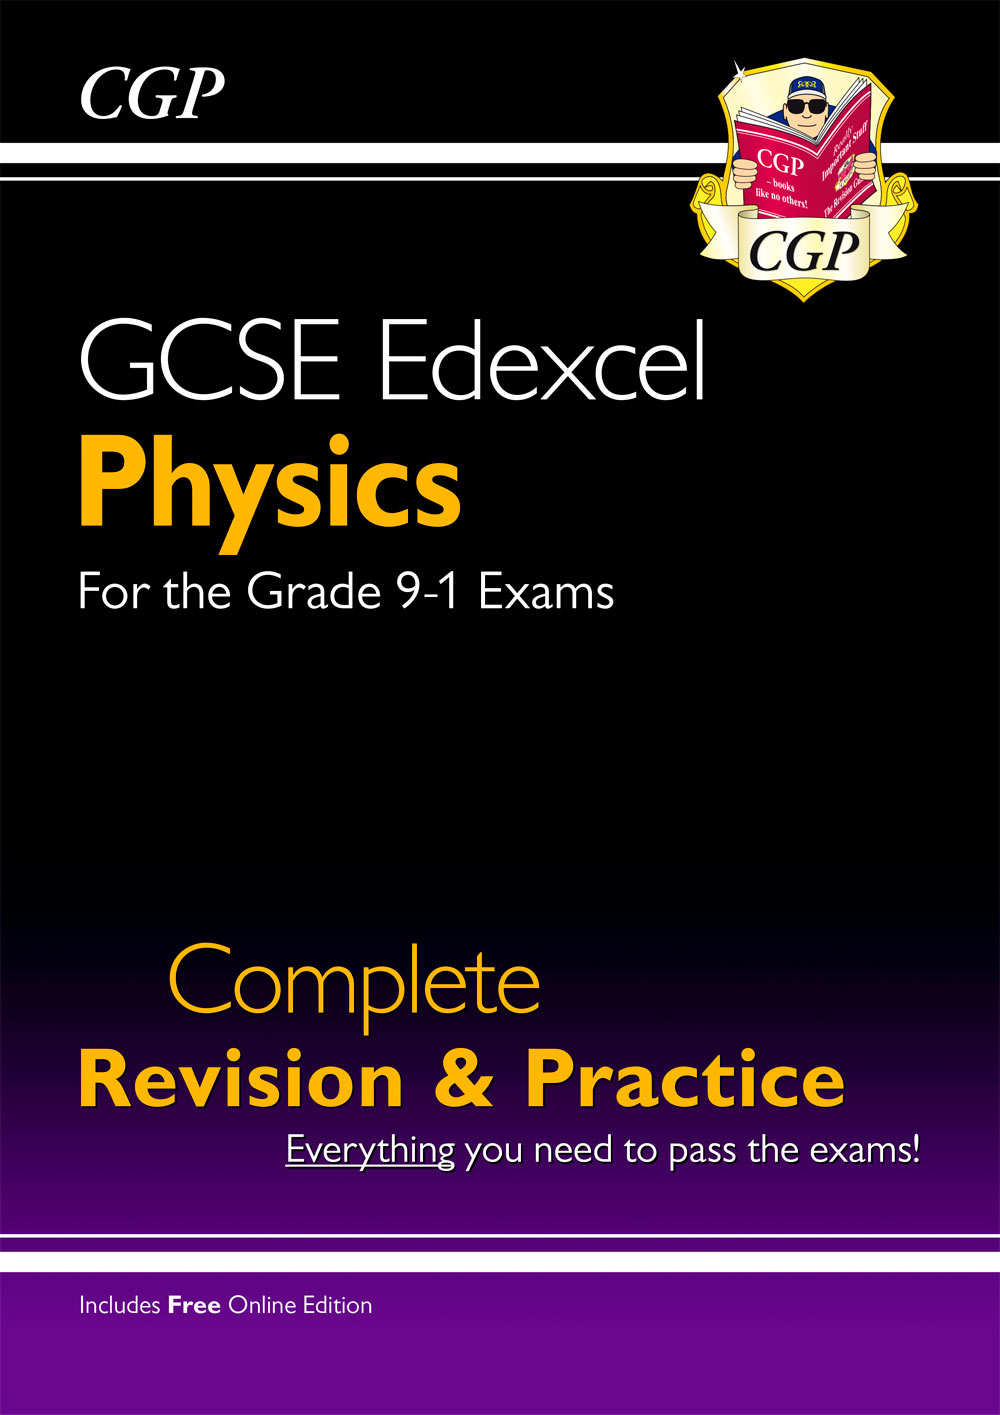 PES41 - New Grade 9-1 GCSE Physics Edexcel Complete Revision & Practice with Online Edition